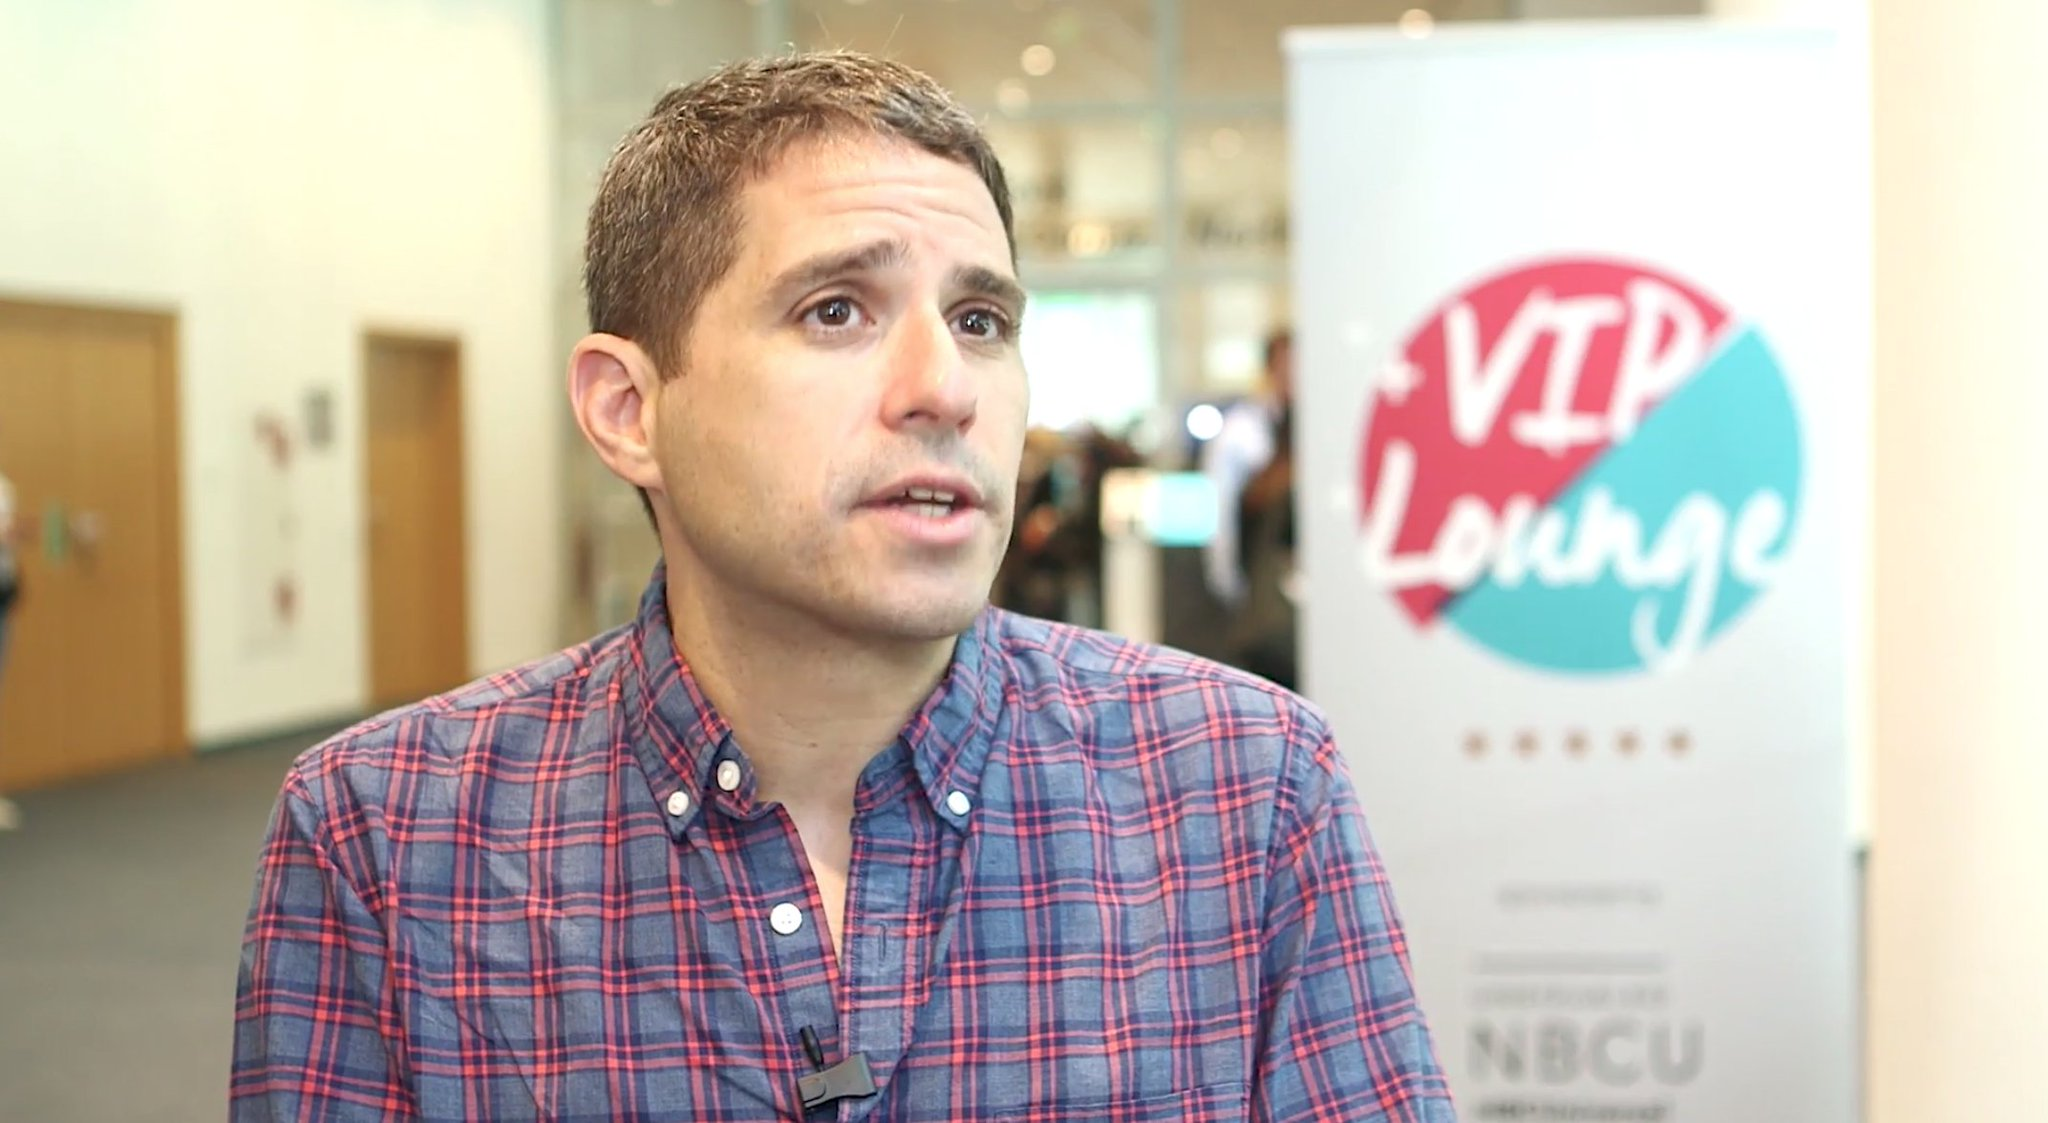 Watch @cstoller's interview with @Beet_TV from @dmexco https://t.co/e0JAkO9CeC https://t.co/D9DOU3j6QC